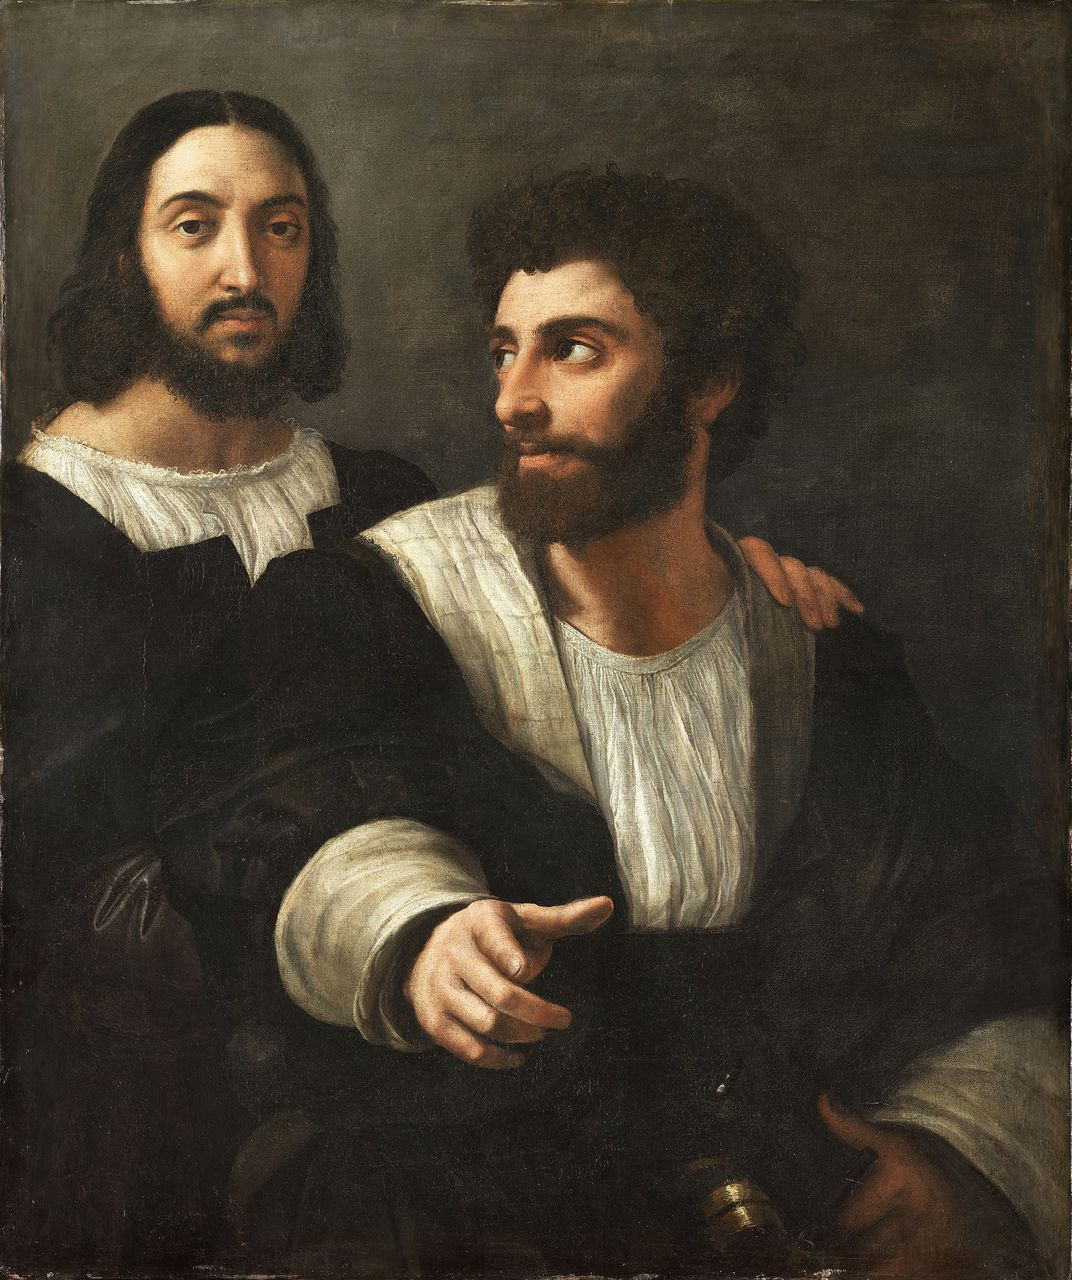 Raphael self-portrait with friend